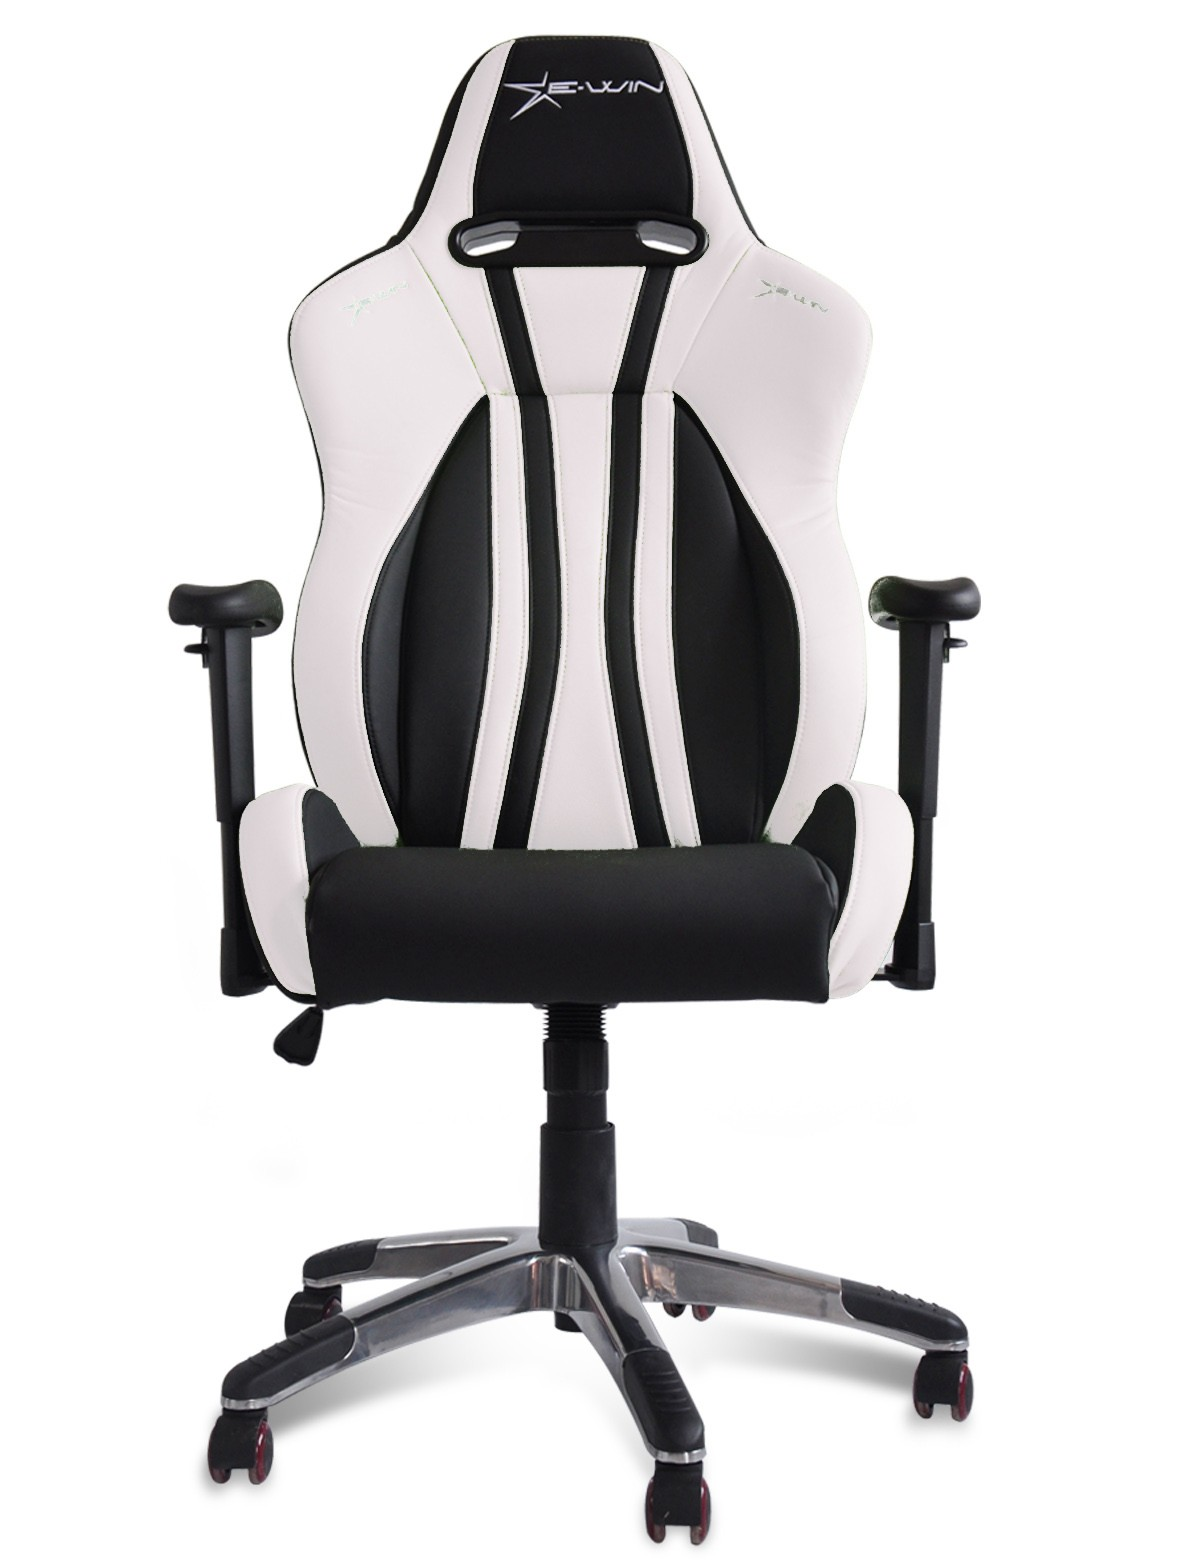 ewin hero series ergonomic computer gaming office chair with pillows hrb